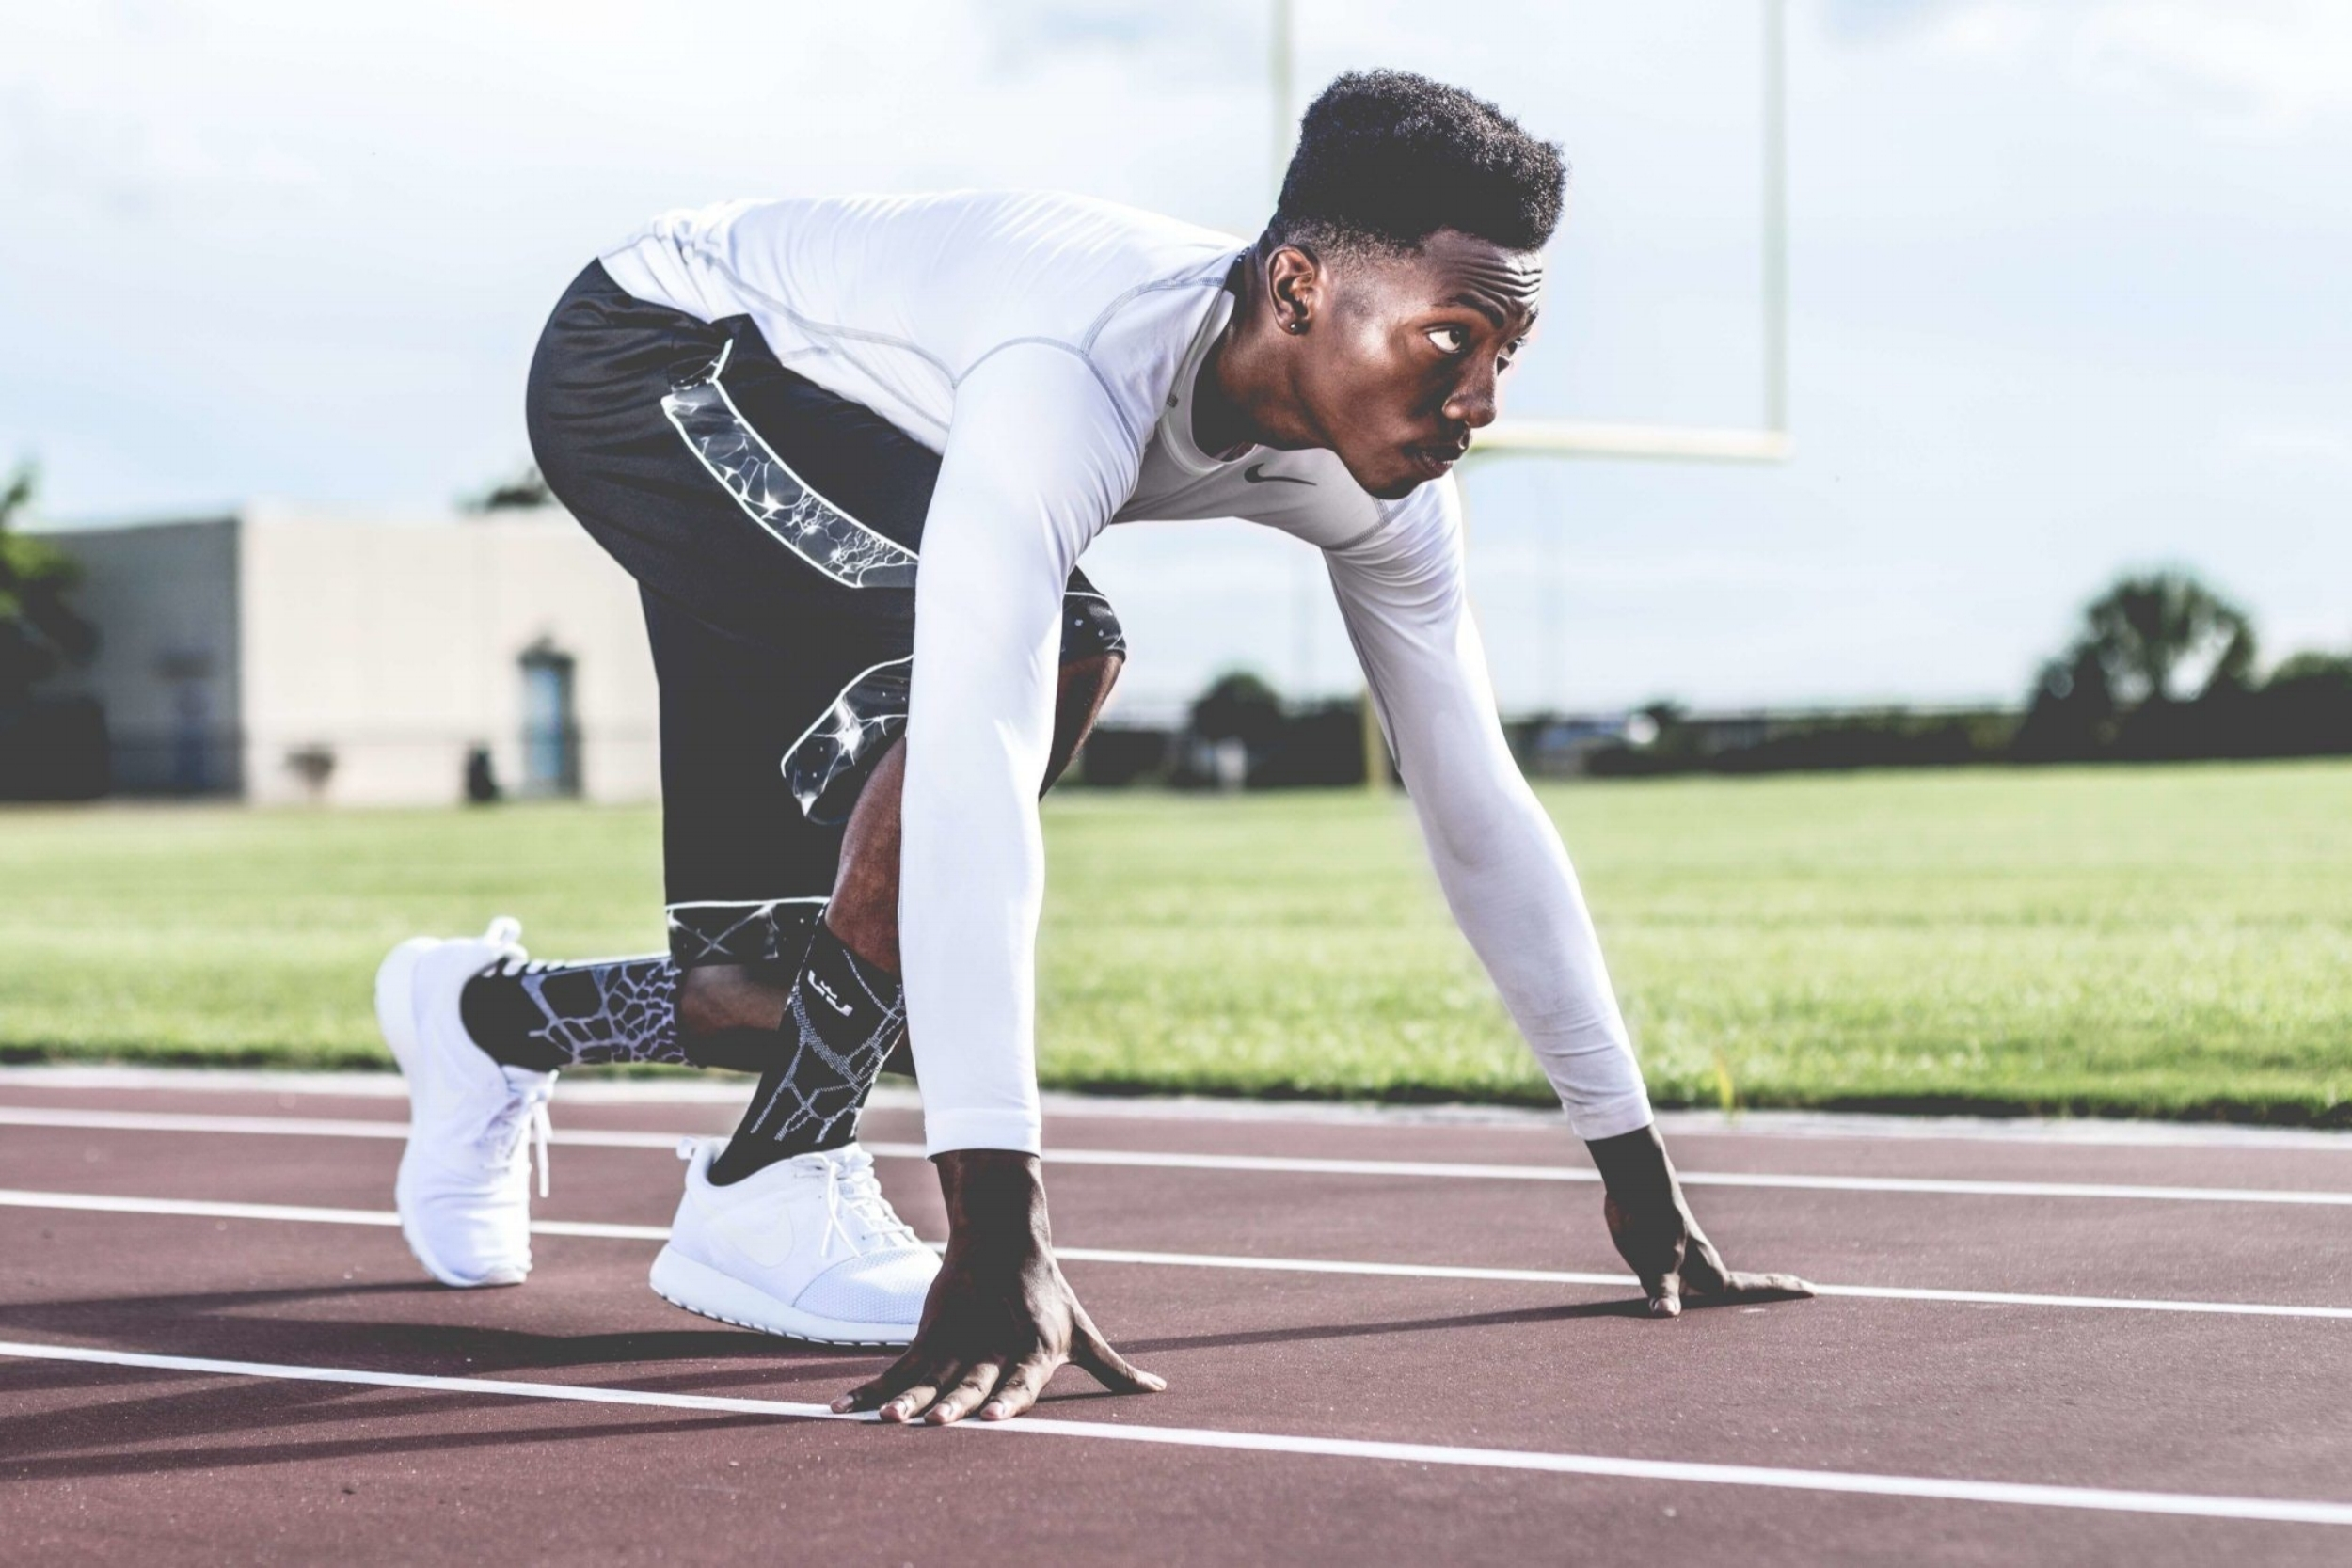 For Athletes MindScape will enhance your... - 1. Ability to mentally train for success2. Power to optimise the mind and body3. Collaborative teamwork skills4. Cognitive coordination, speed and agility